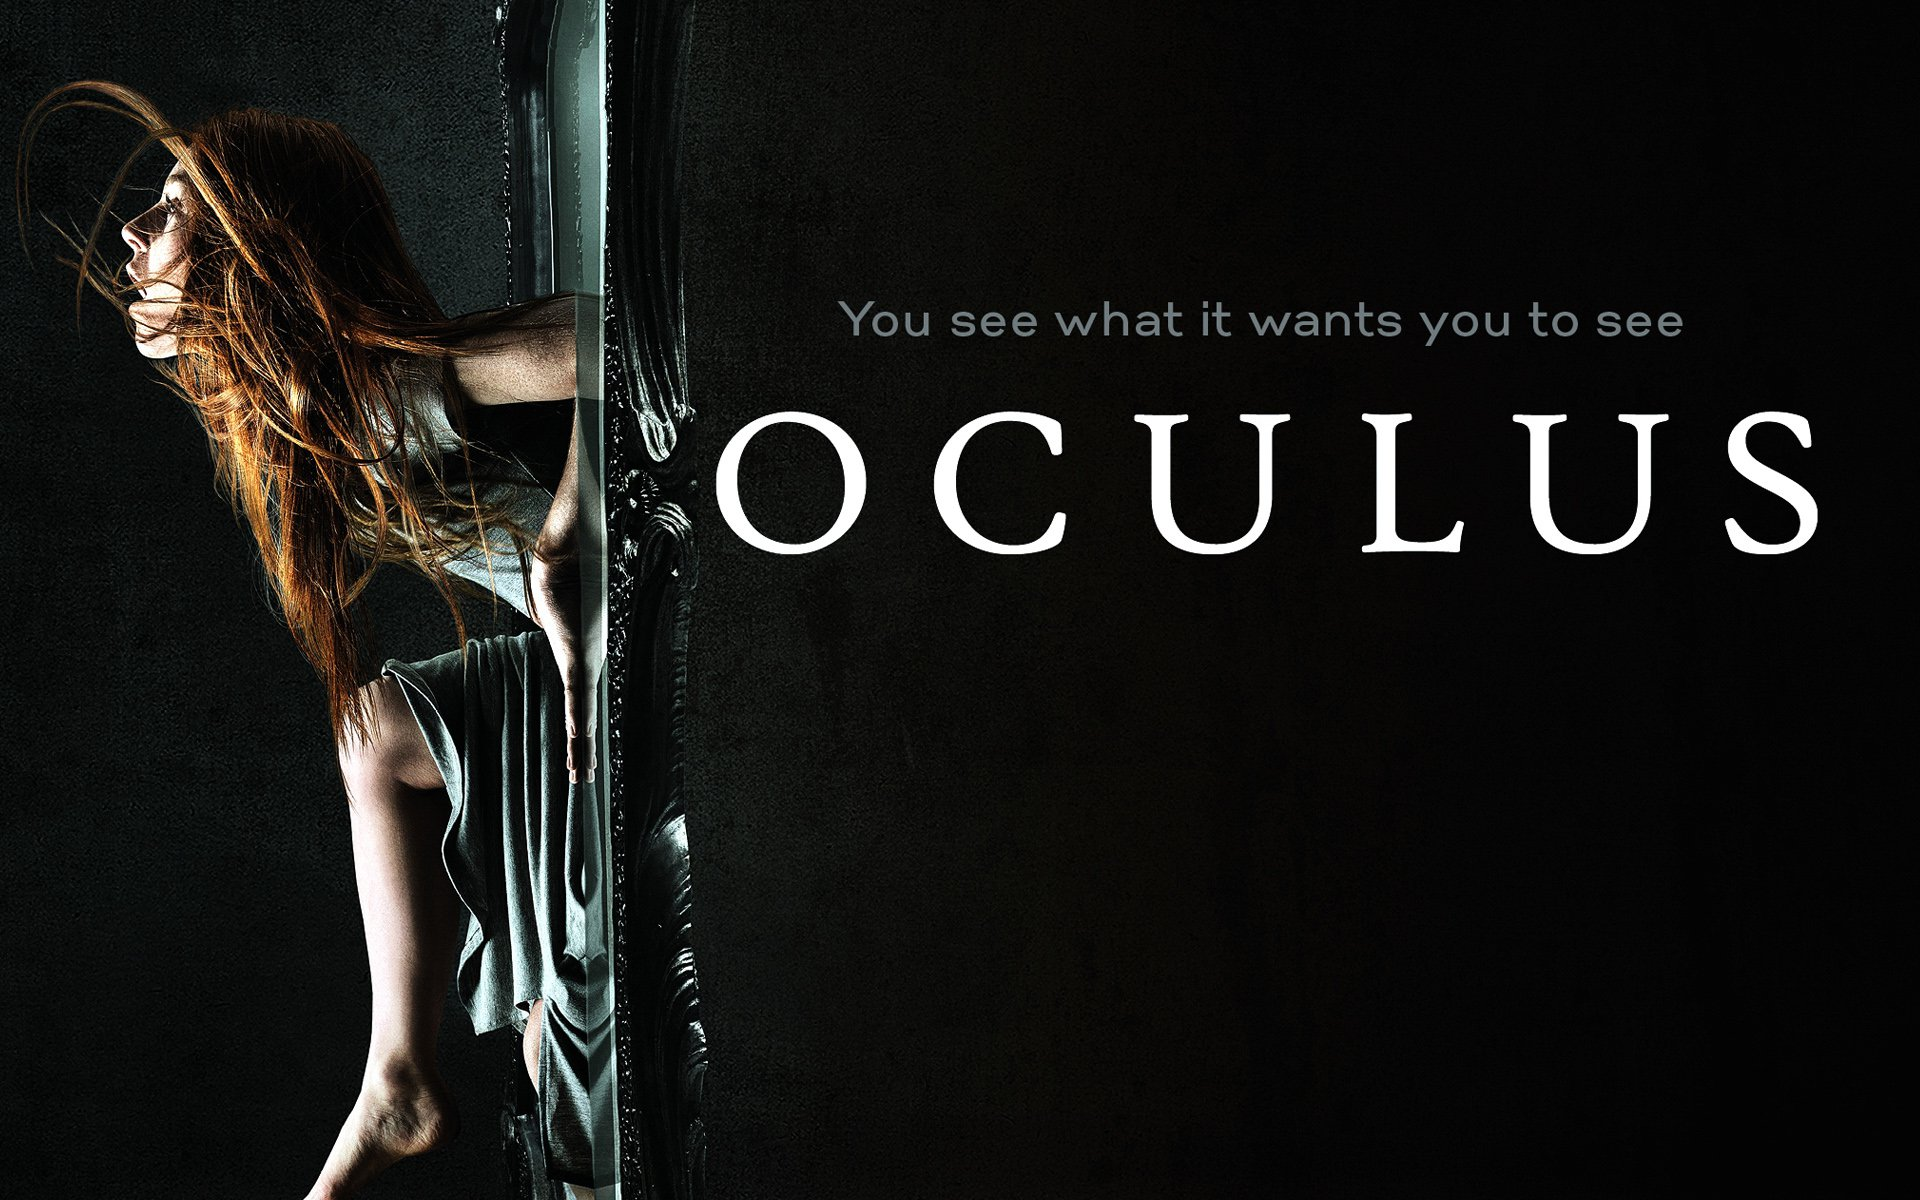 oculus horror movie, hd movies, 4k wallpapers, images, backgrounds